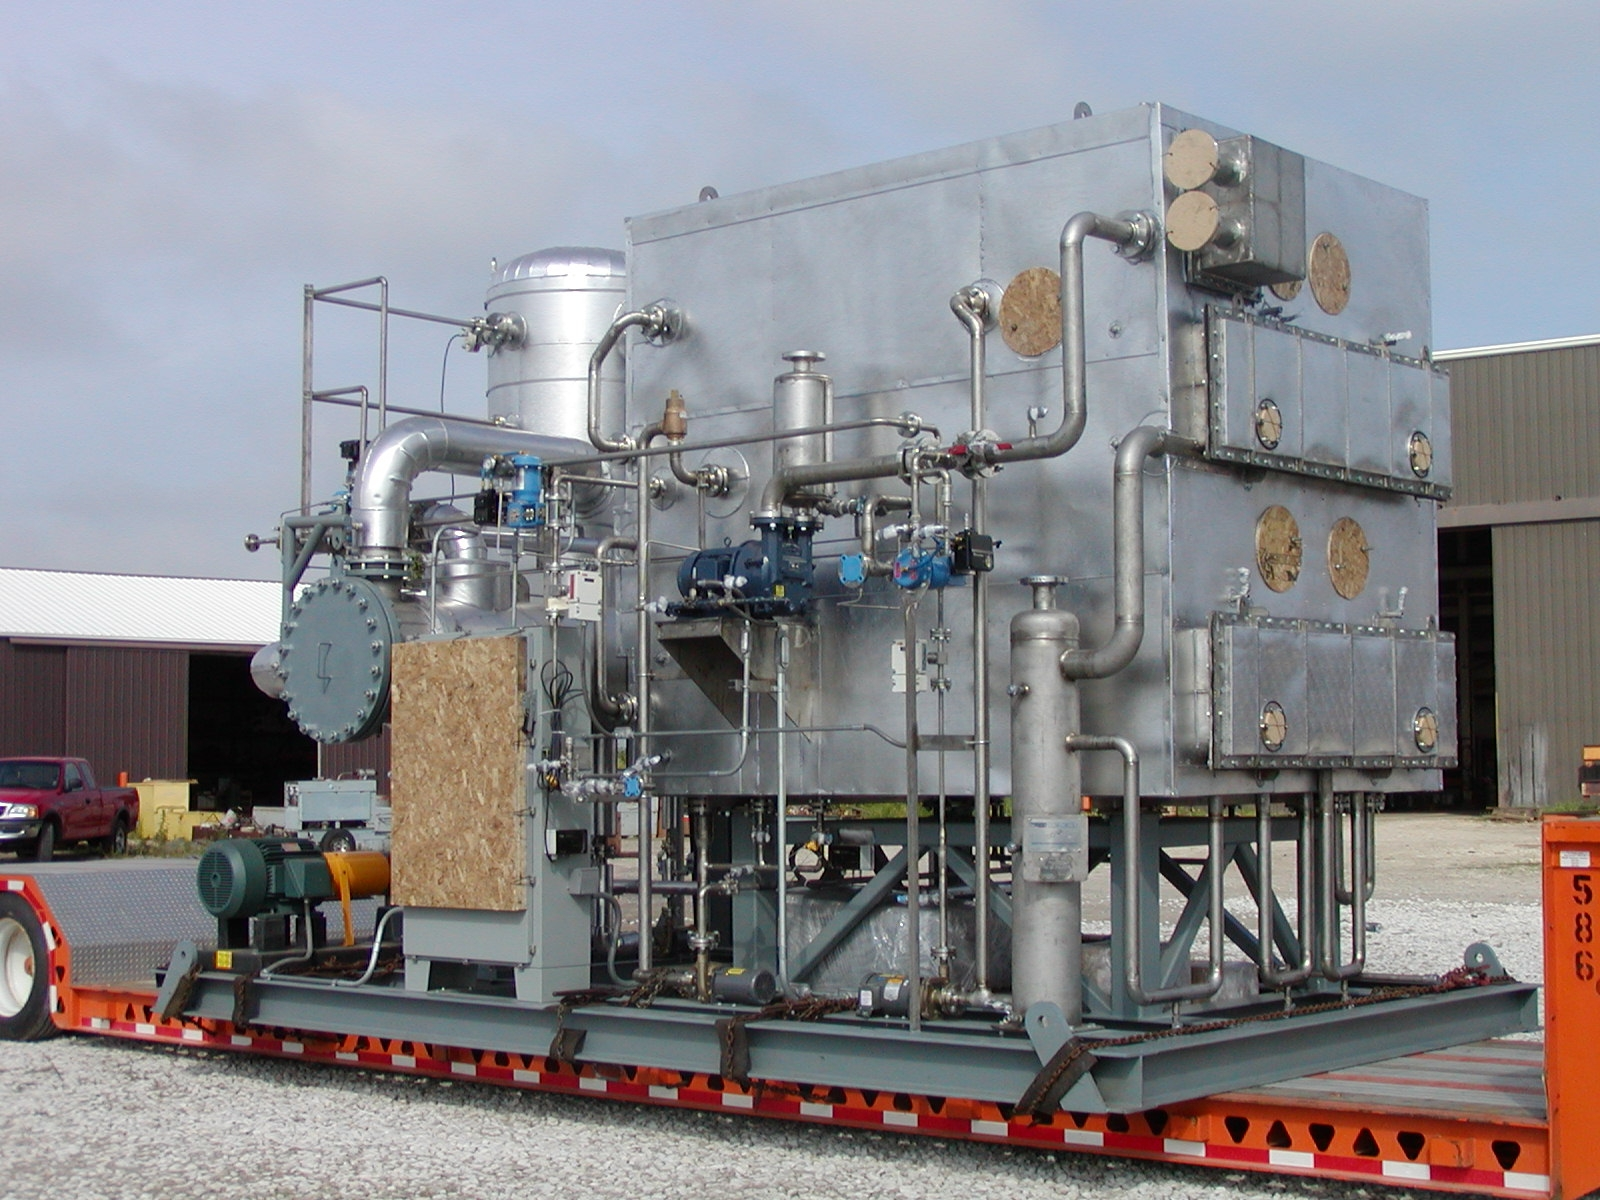 Process Systems - Complete Skid-Mounted 5-Effect Evaporation System (piped, instrumented, wired, insulated and lagged)MORE →